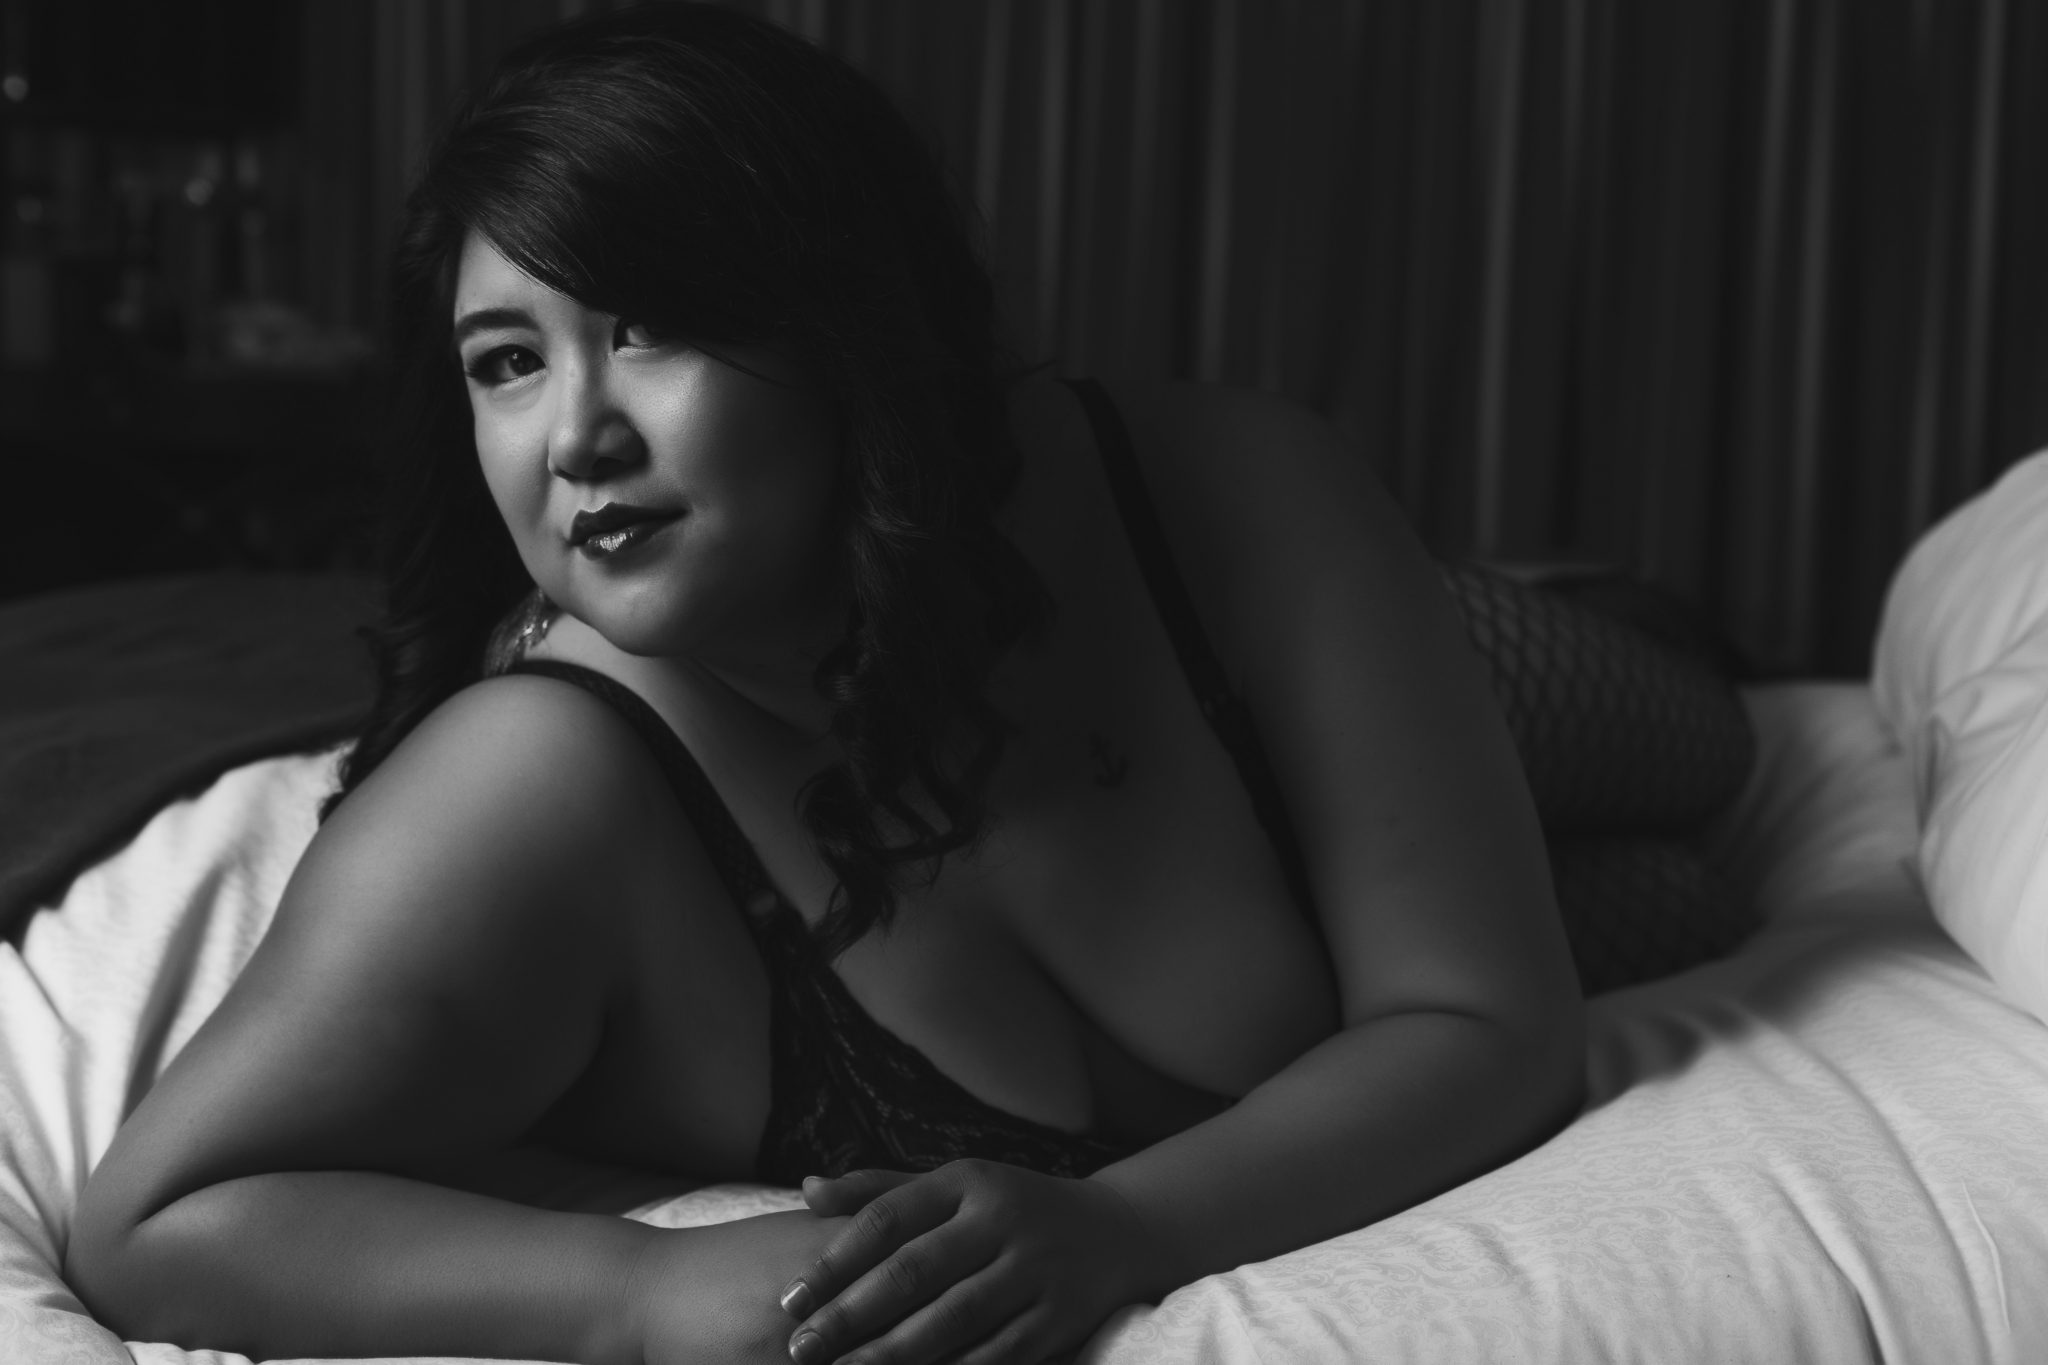 bw boudoir photo, moody, mysterious, boudoir photography vegas, haute shots